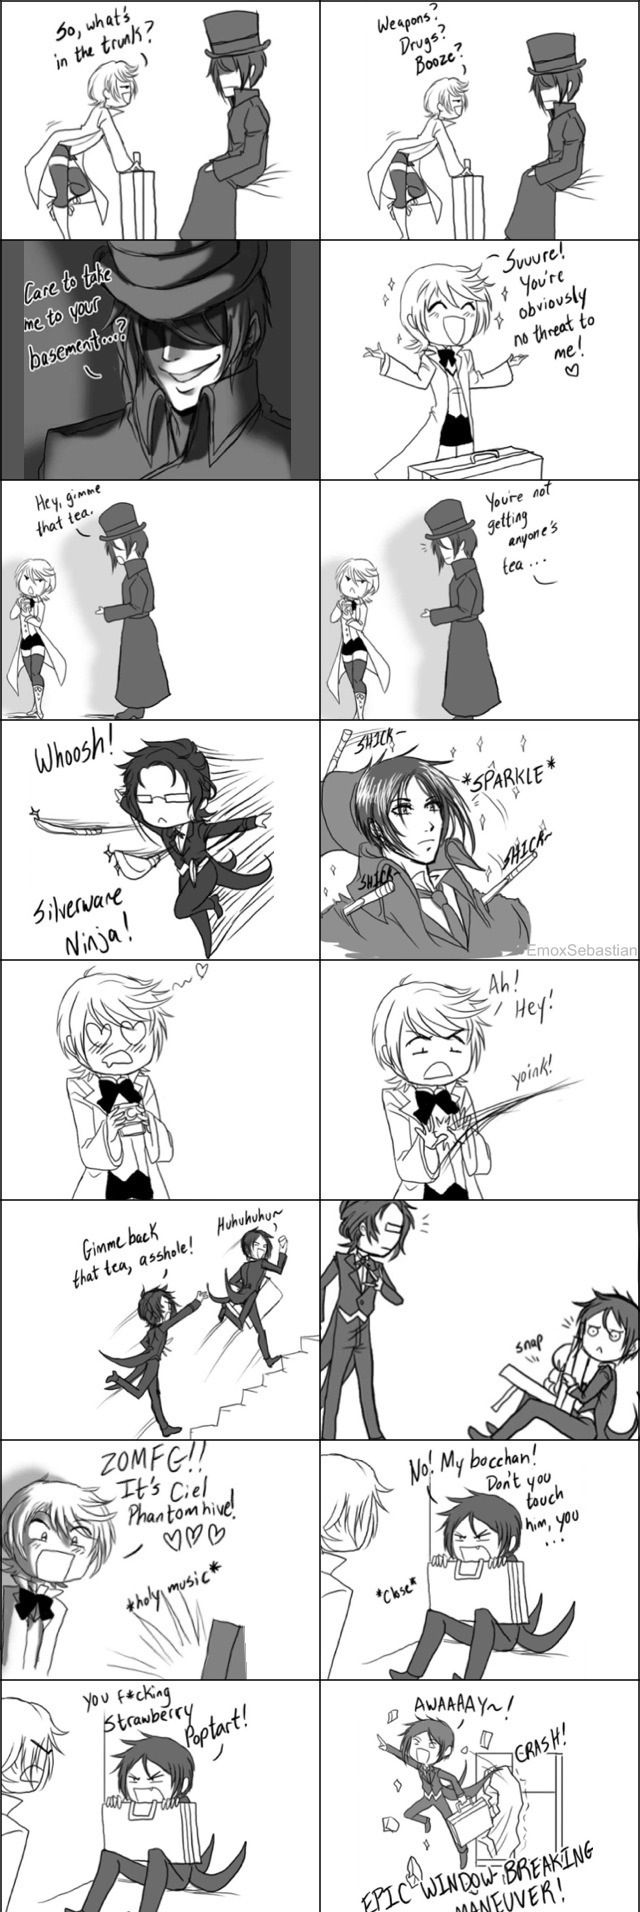 This is exactly what happened.... I just laughed so hard at this.